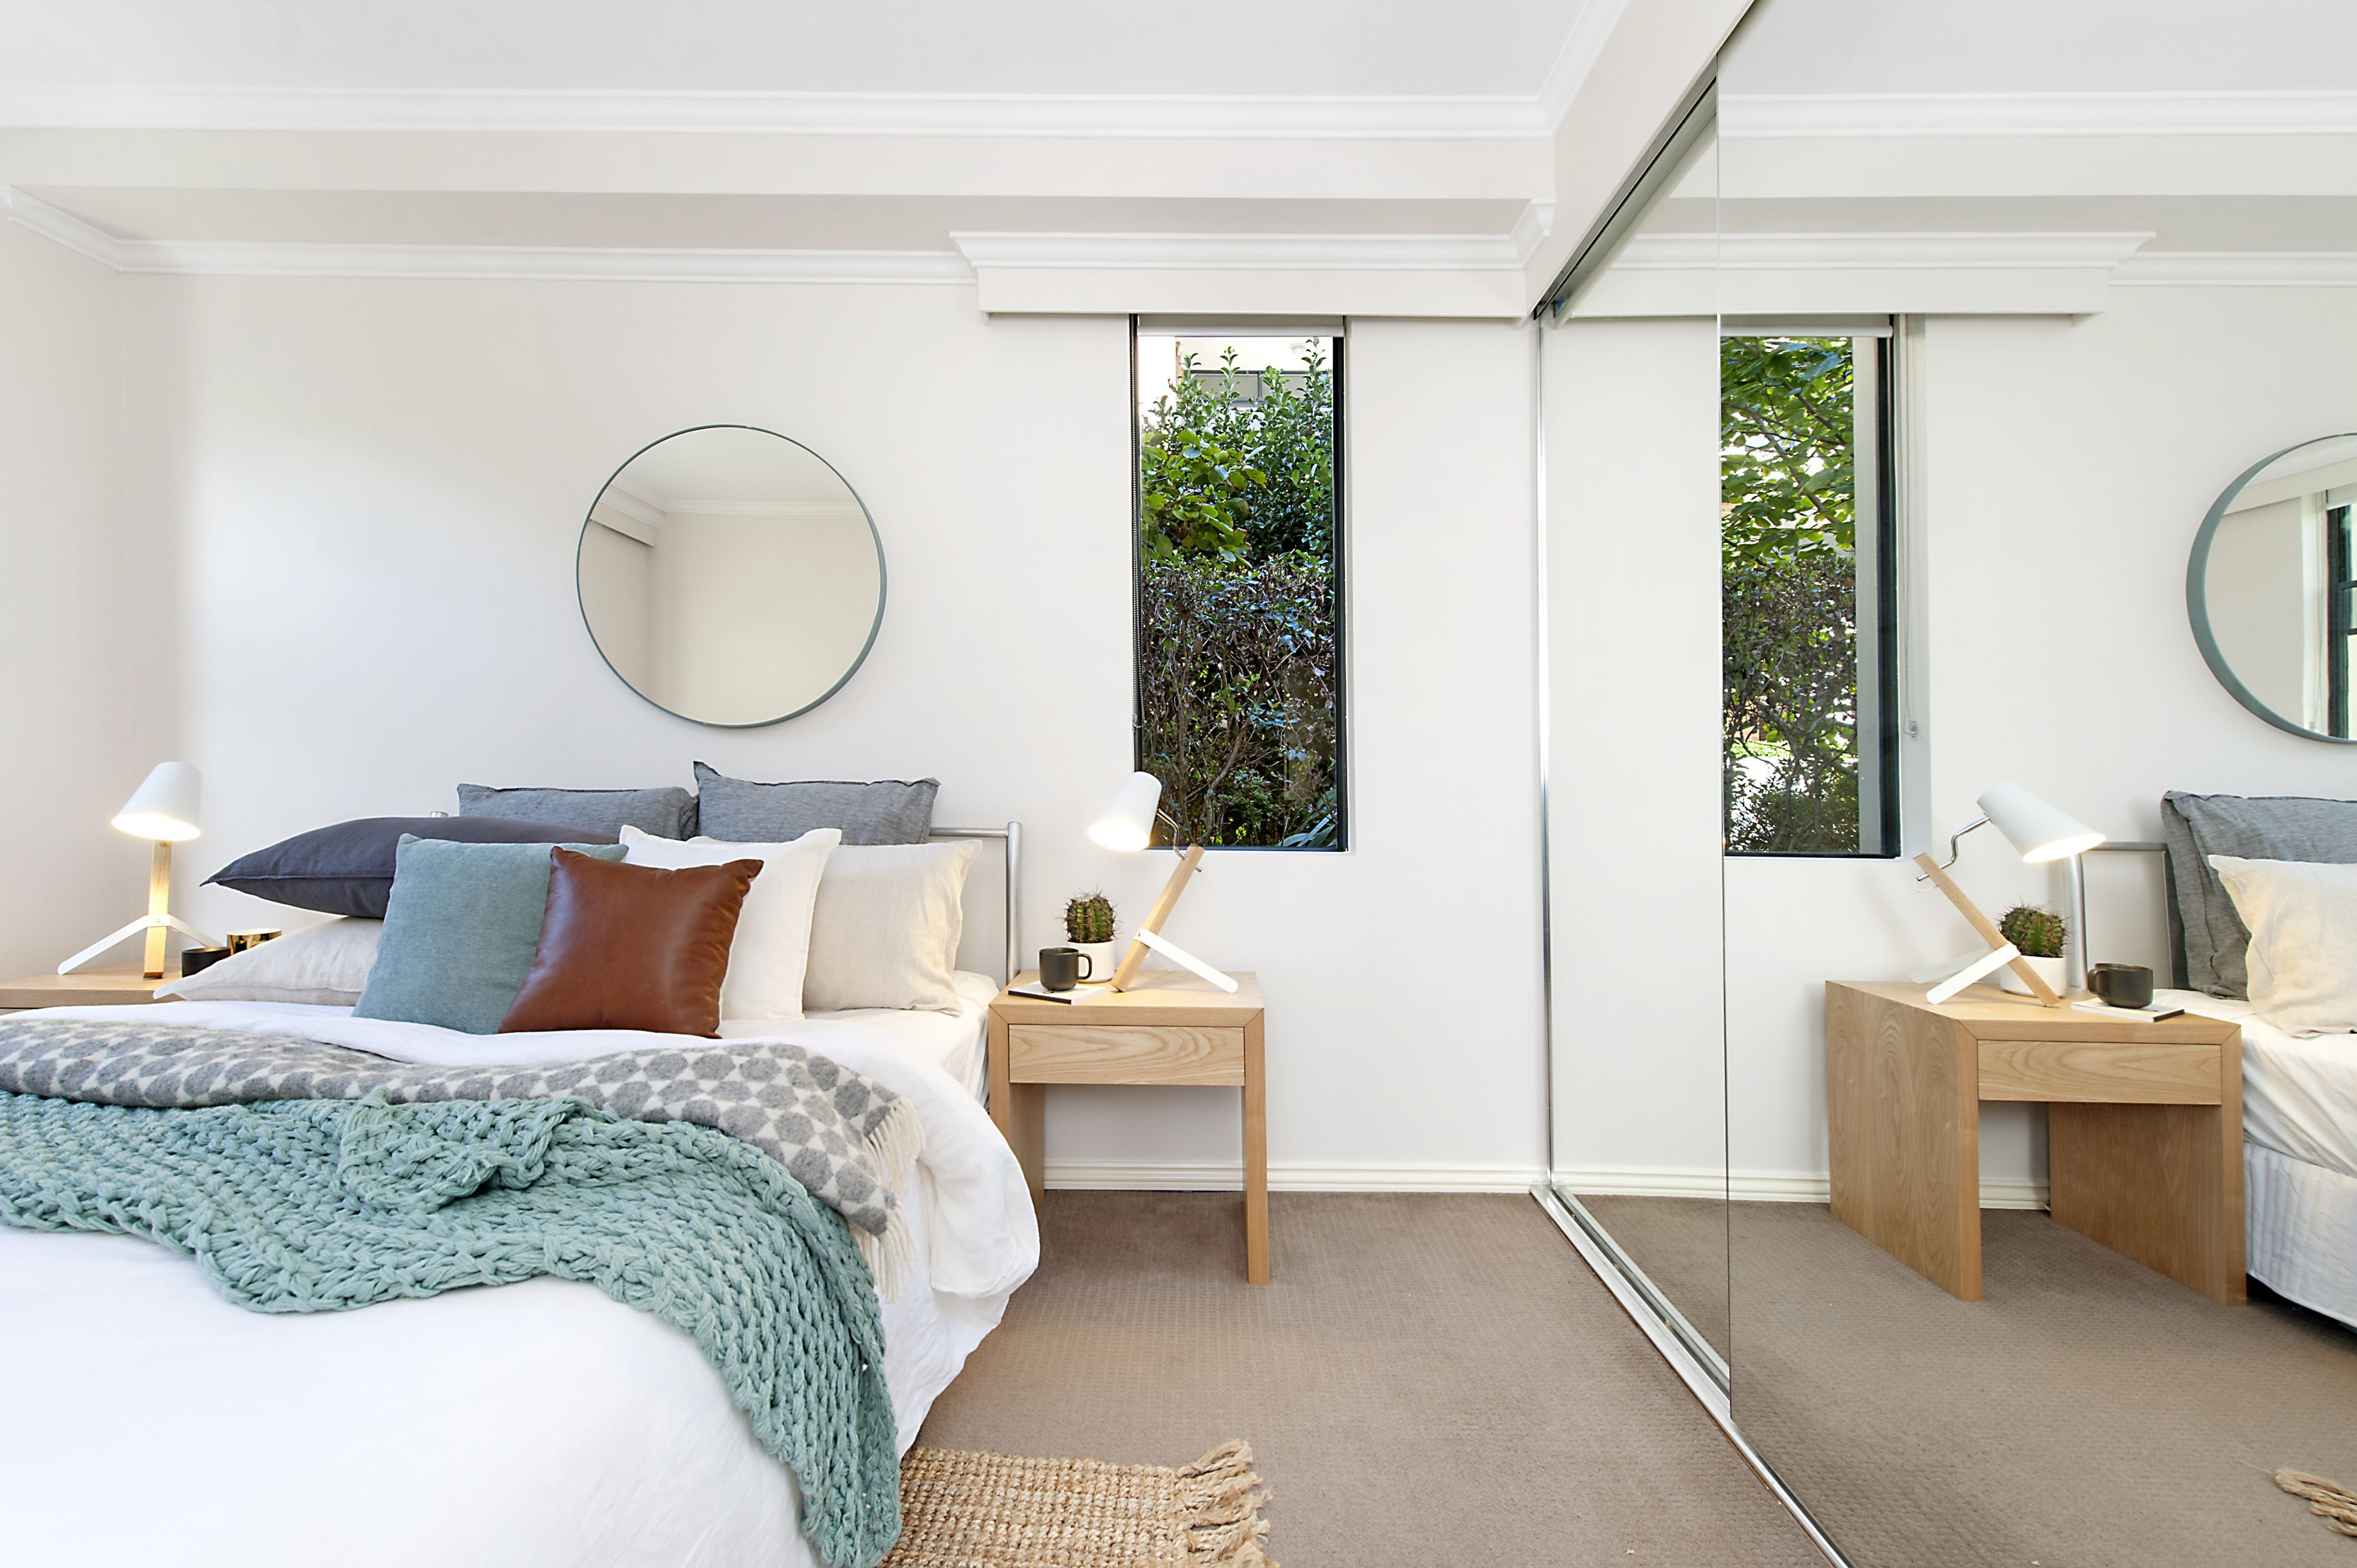 White bedroom with circular mirror over bed, lots of